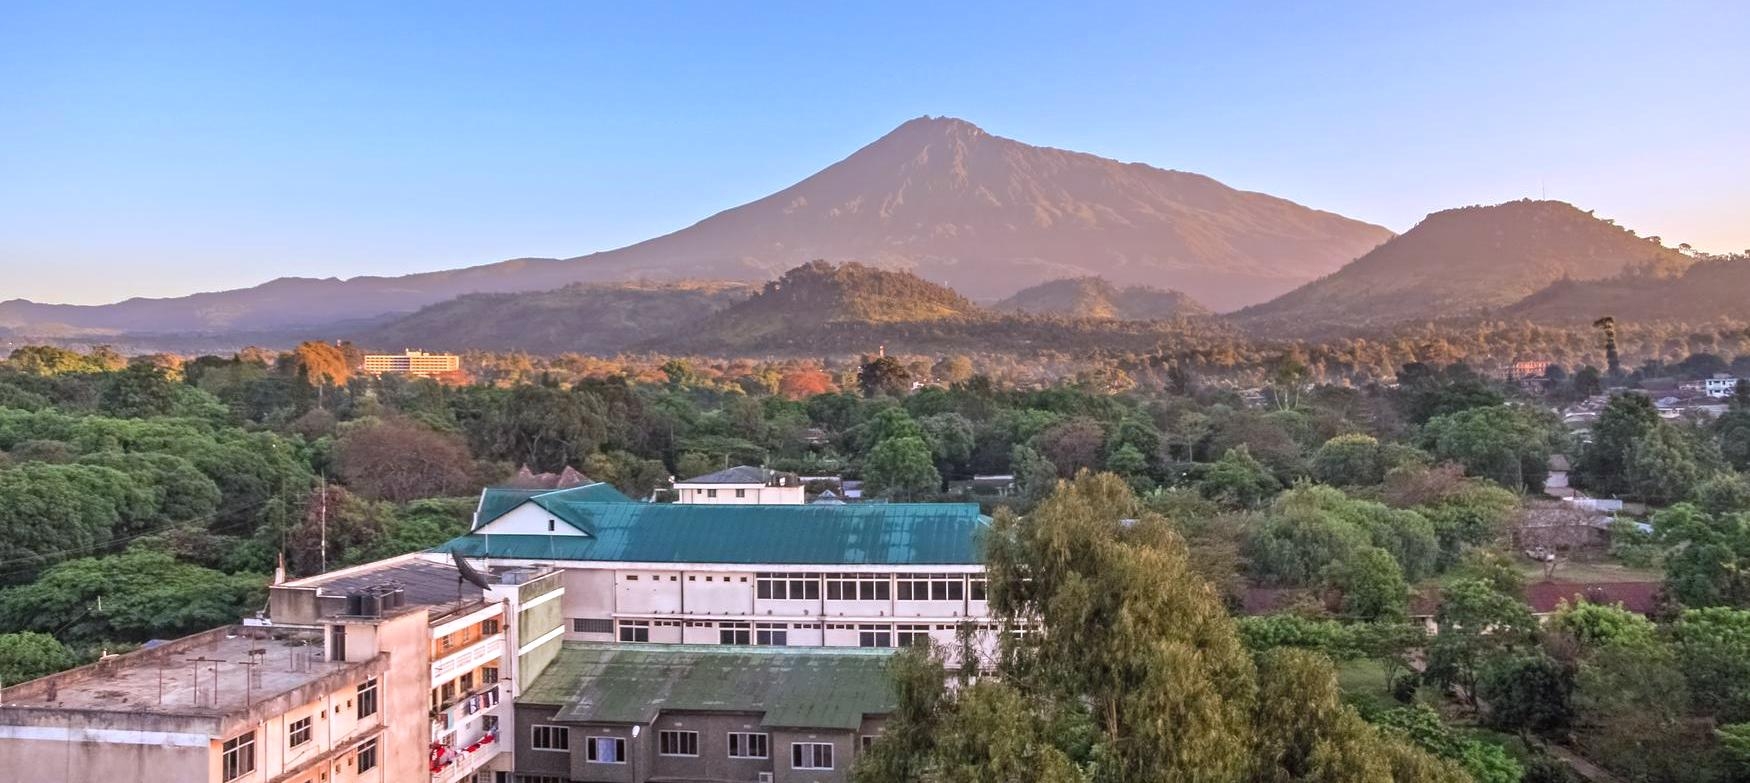 Top 15 Things to do in Arusha City, Tanzania